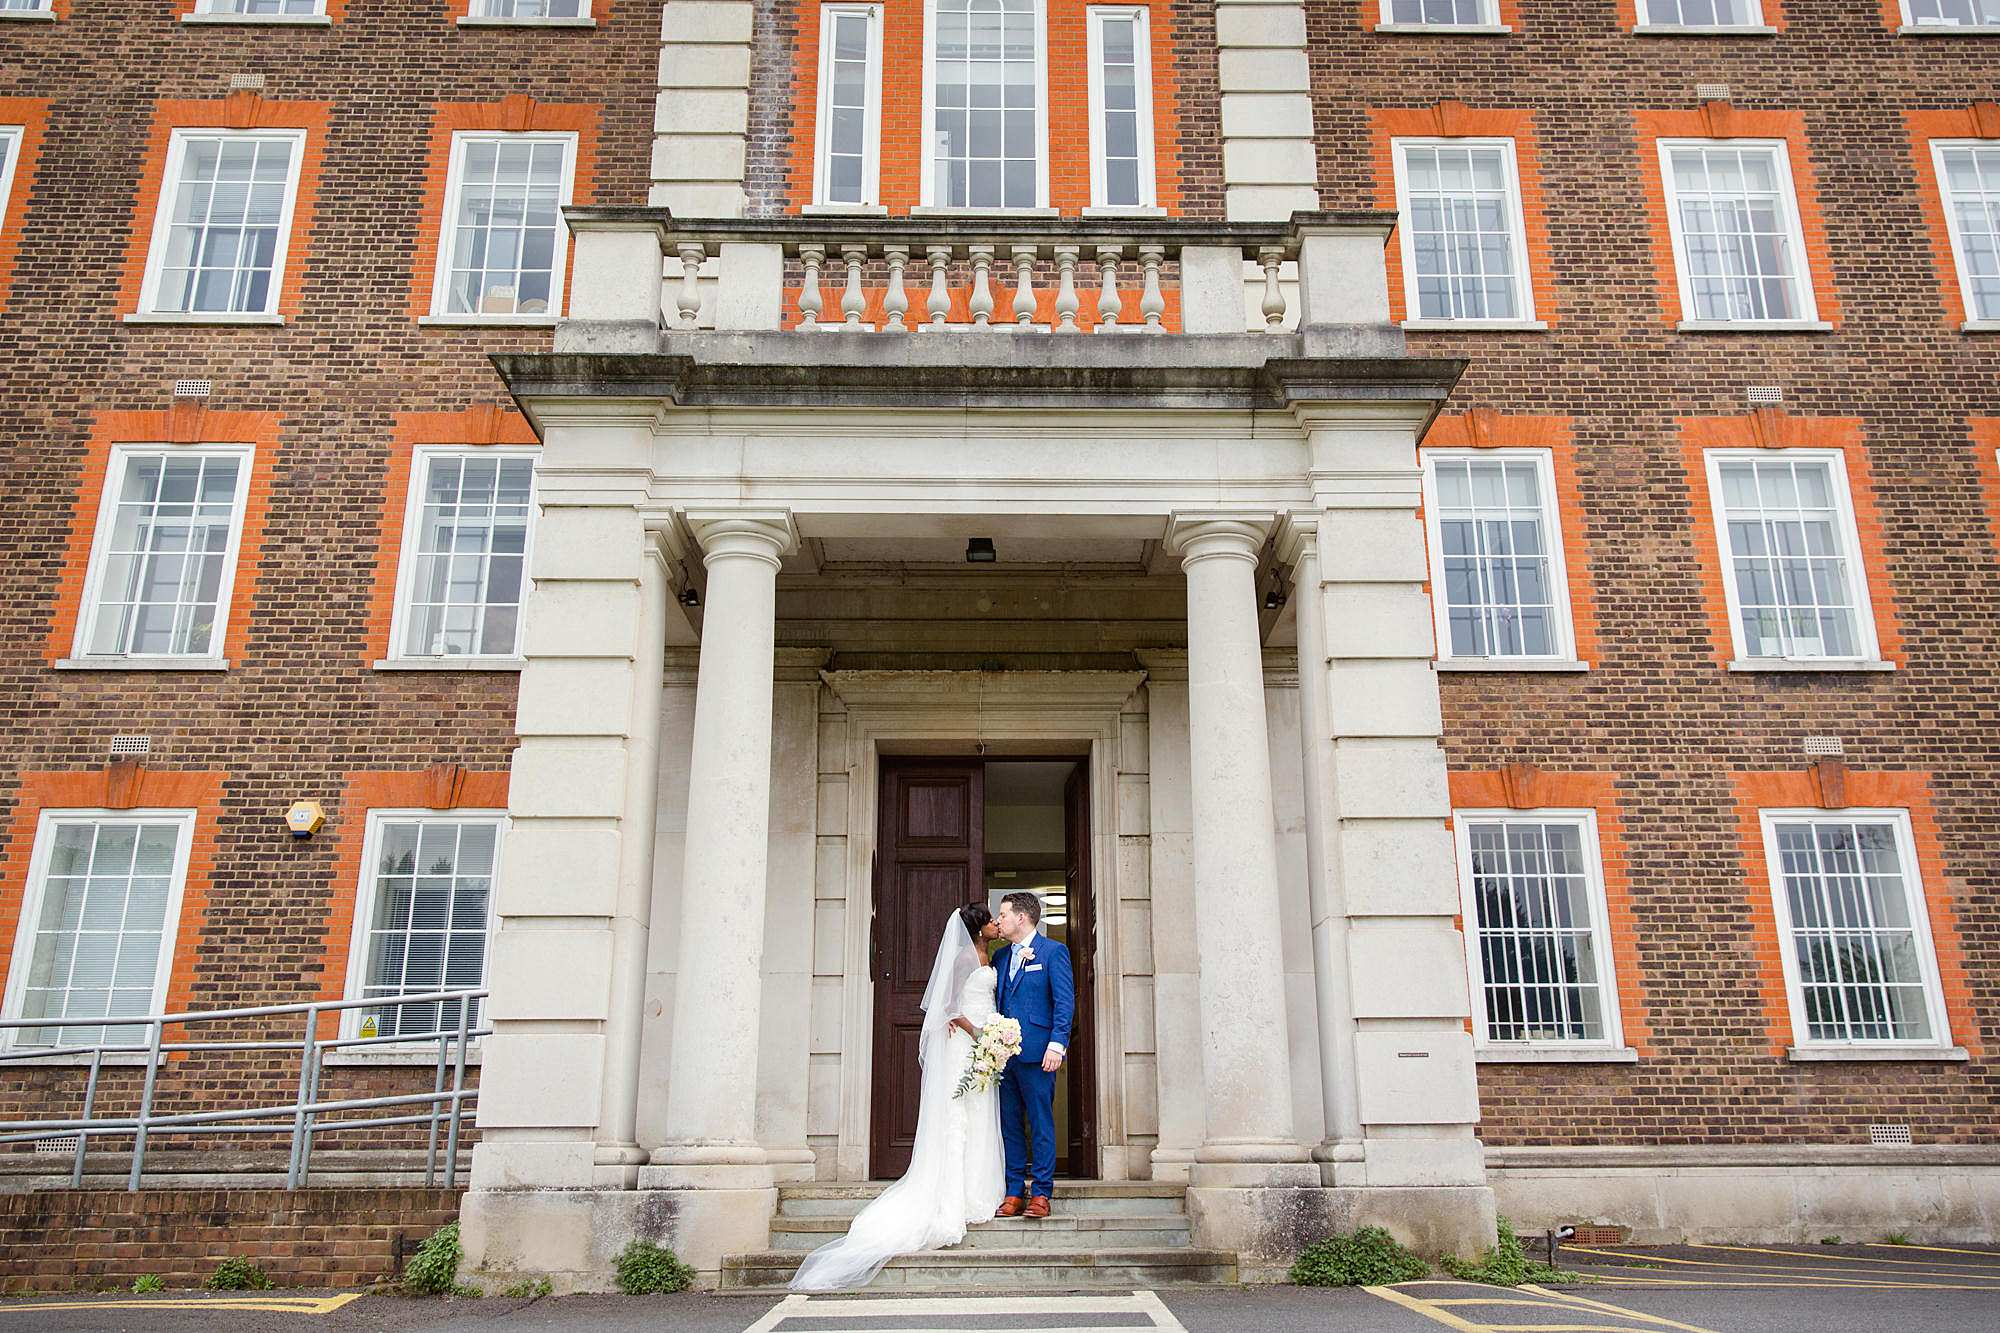 Bank of England Sports Centre wedding bride and groom in front of building